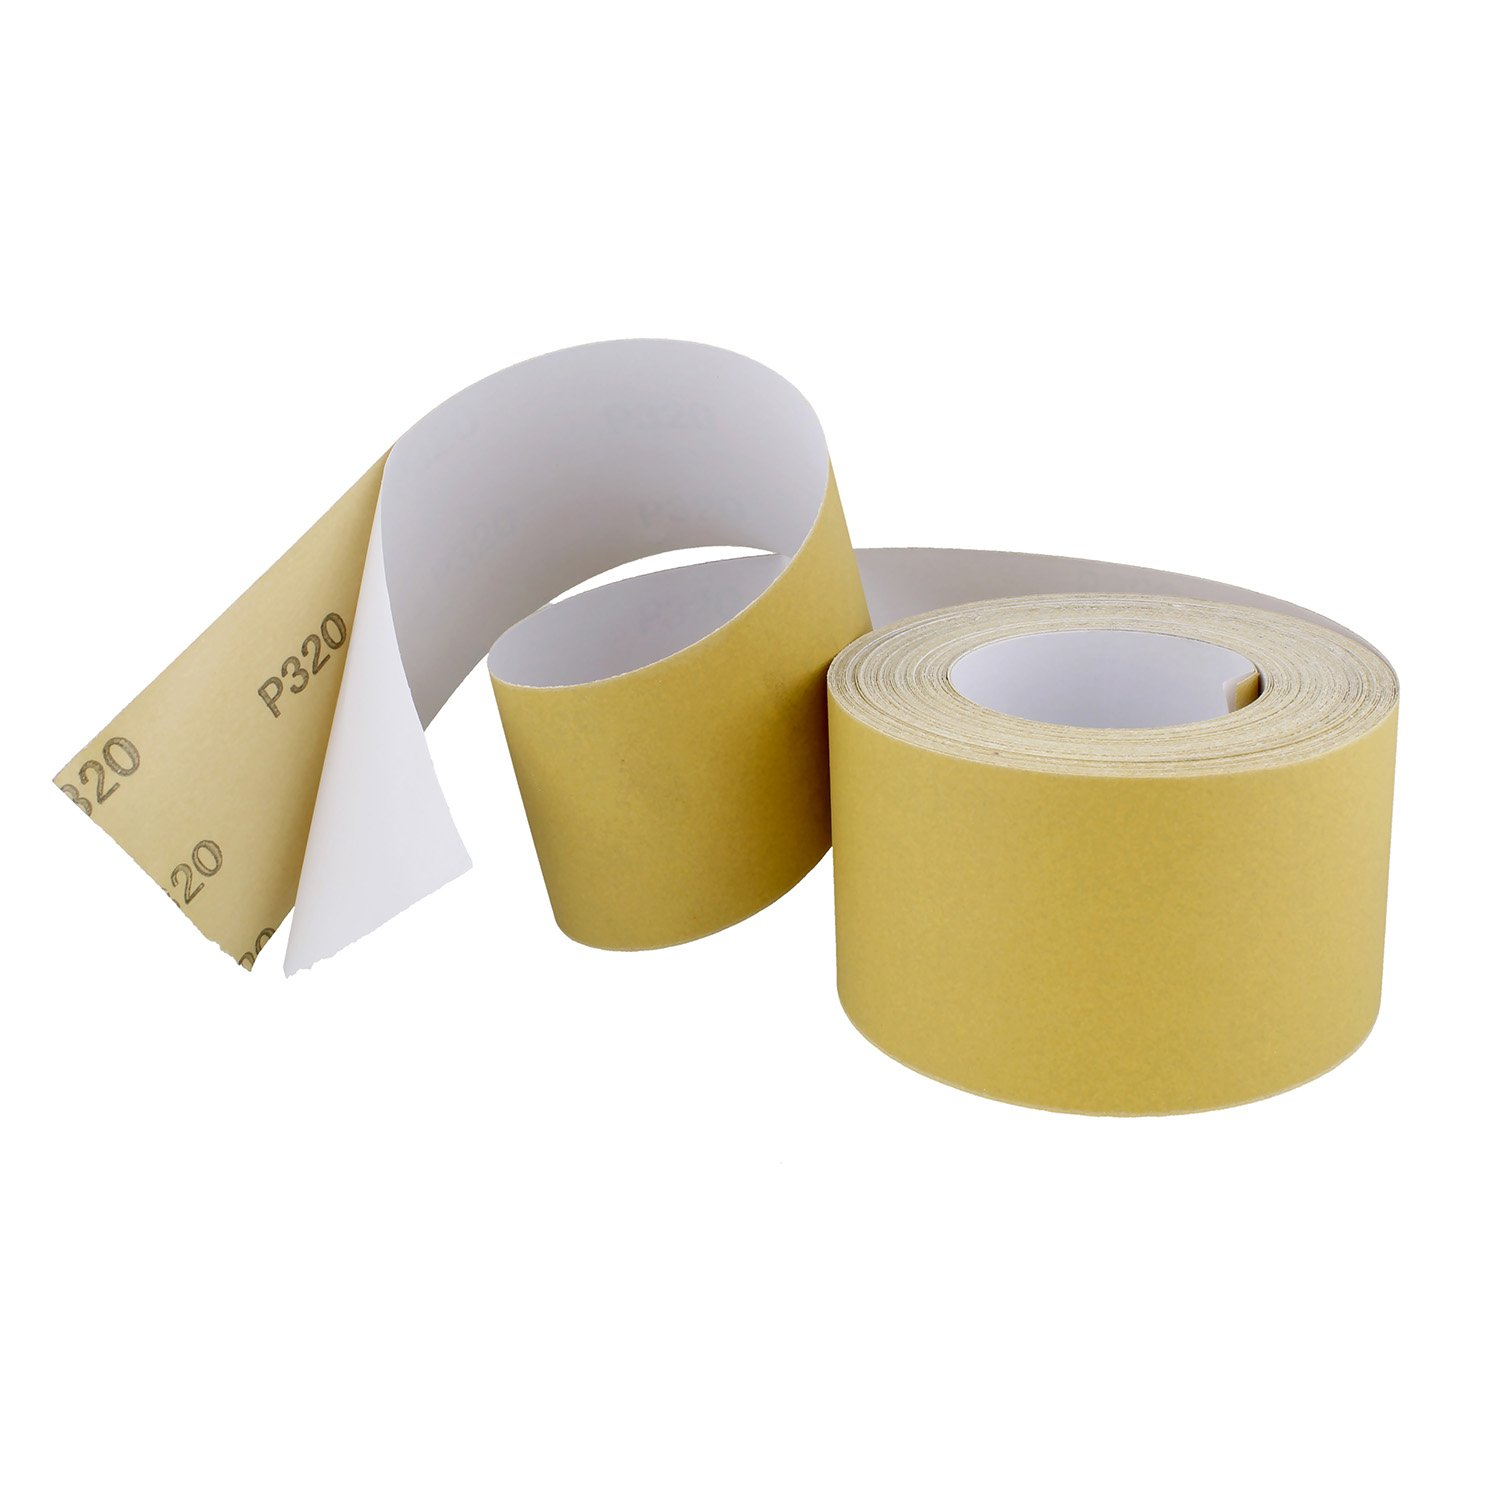 """ABN Adhesive Sticky Back 80-Grit Sandpaper Roll 2-3//4/"""" Inch x 20 Yards Aluminum Oxide Golden Yellow Longboard Dura PSA"""